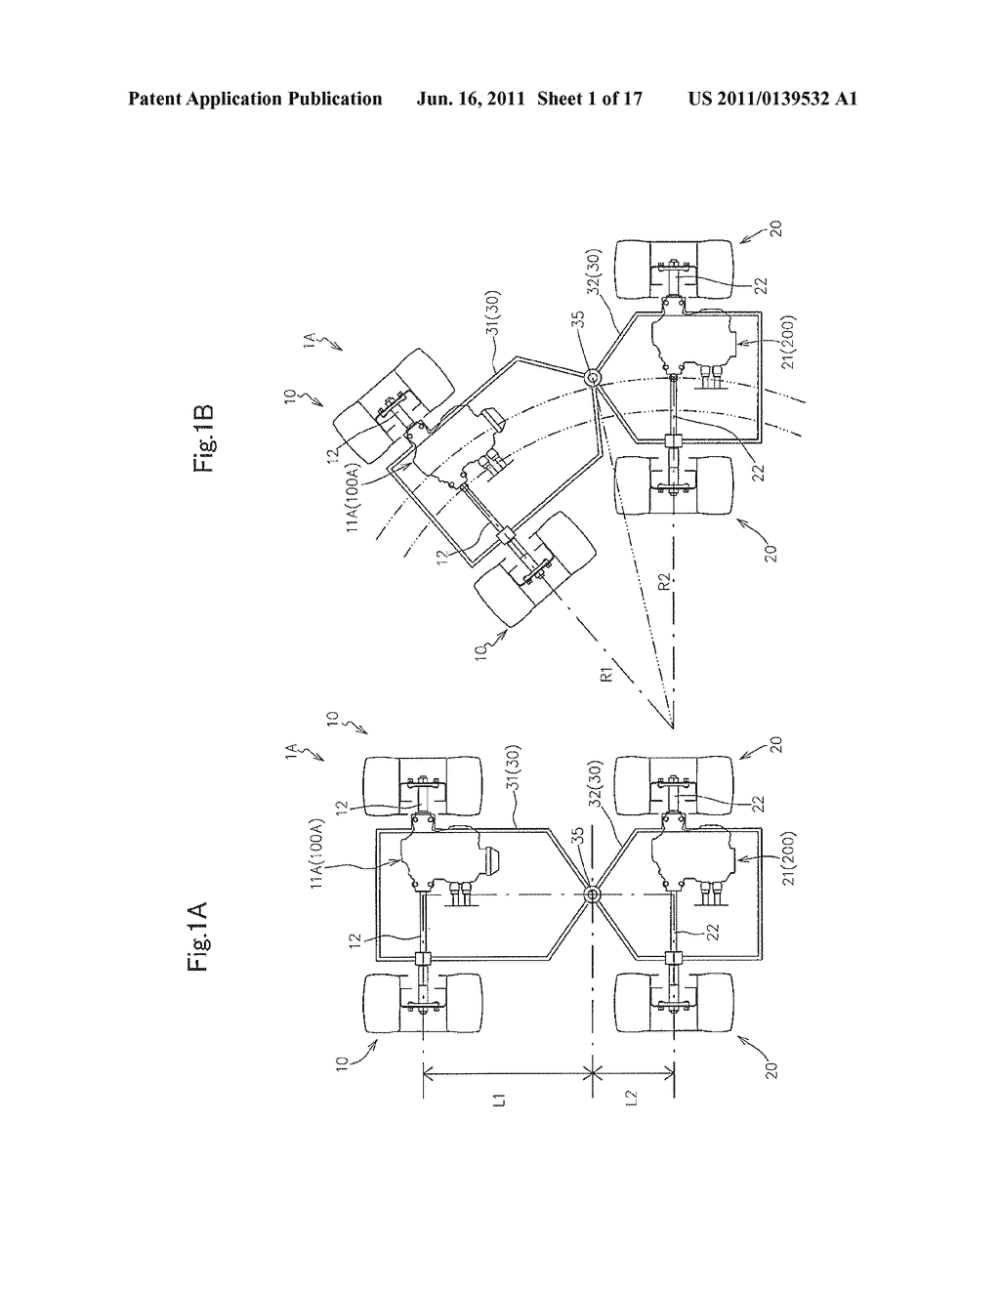 medium resolution of hydraulic motor unit and hydraulic four wheel drive working vehicle diagram schematic and image 02